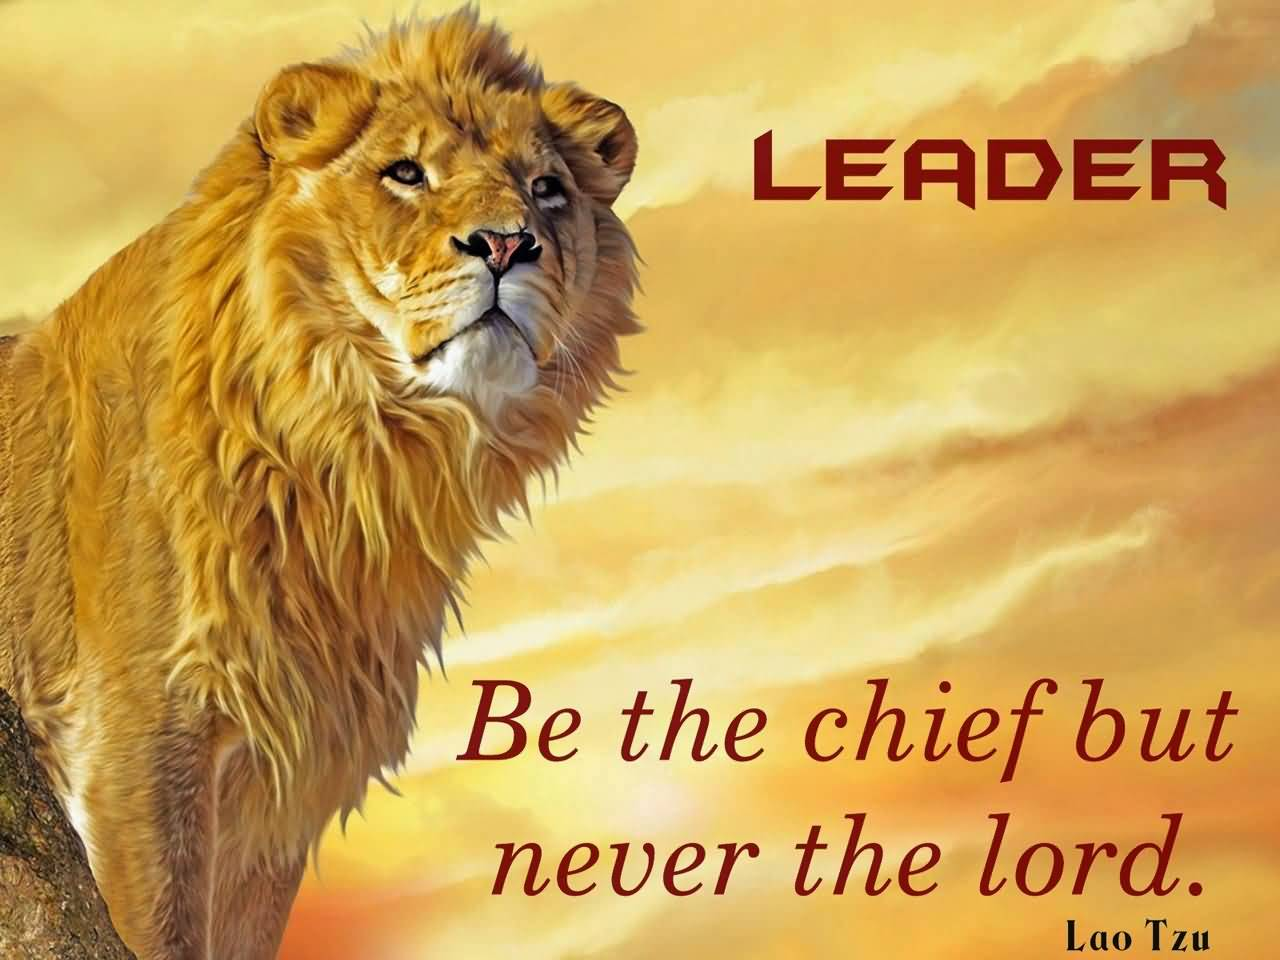 Be the chief but never the lord - Lao Tzu